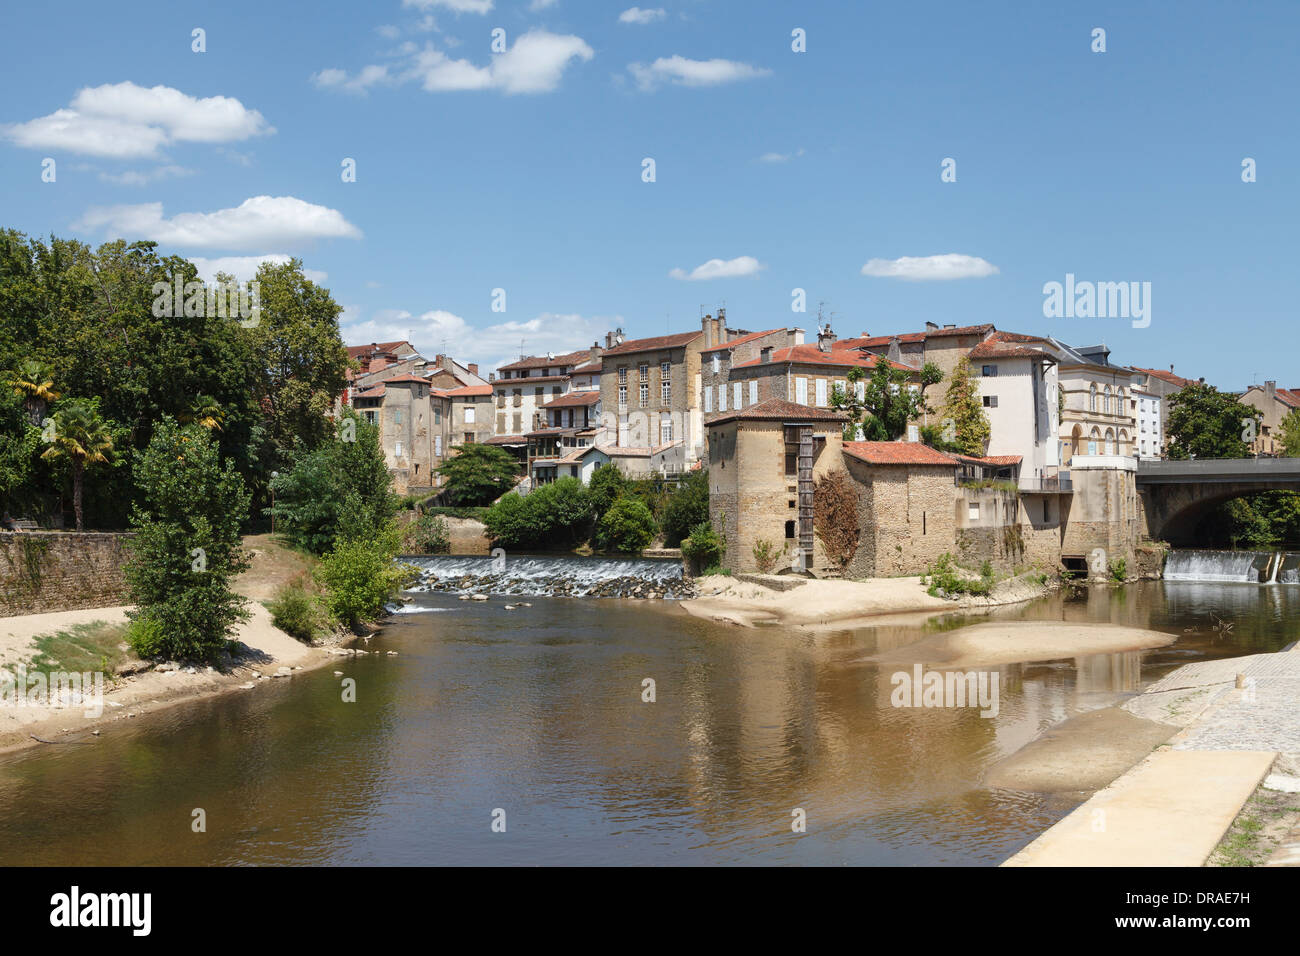 the confluence of the douze and midou rivers at mont de marsan stock photo 65998901 alamy. Black Bedroom Furniture Sets. Home Design Ideas